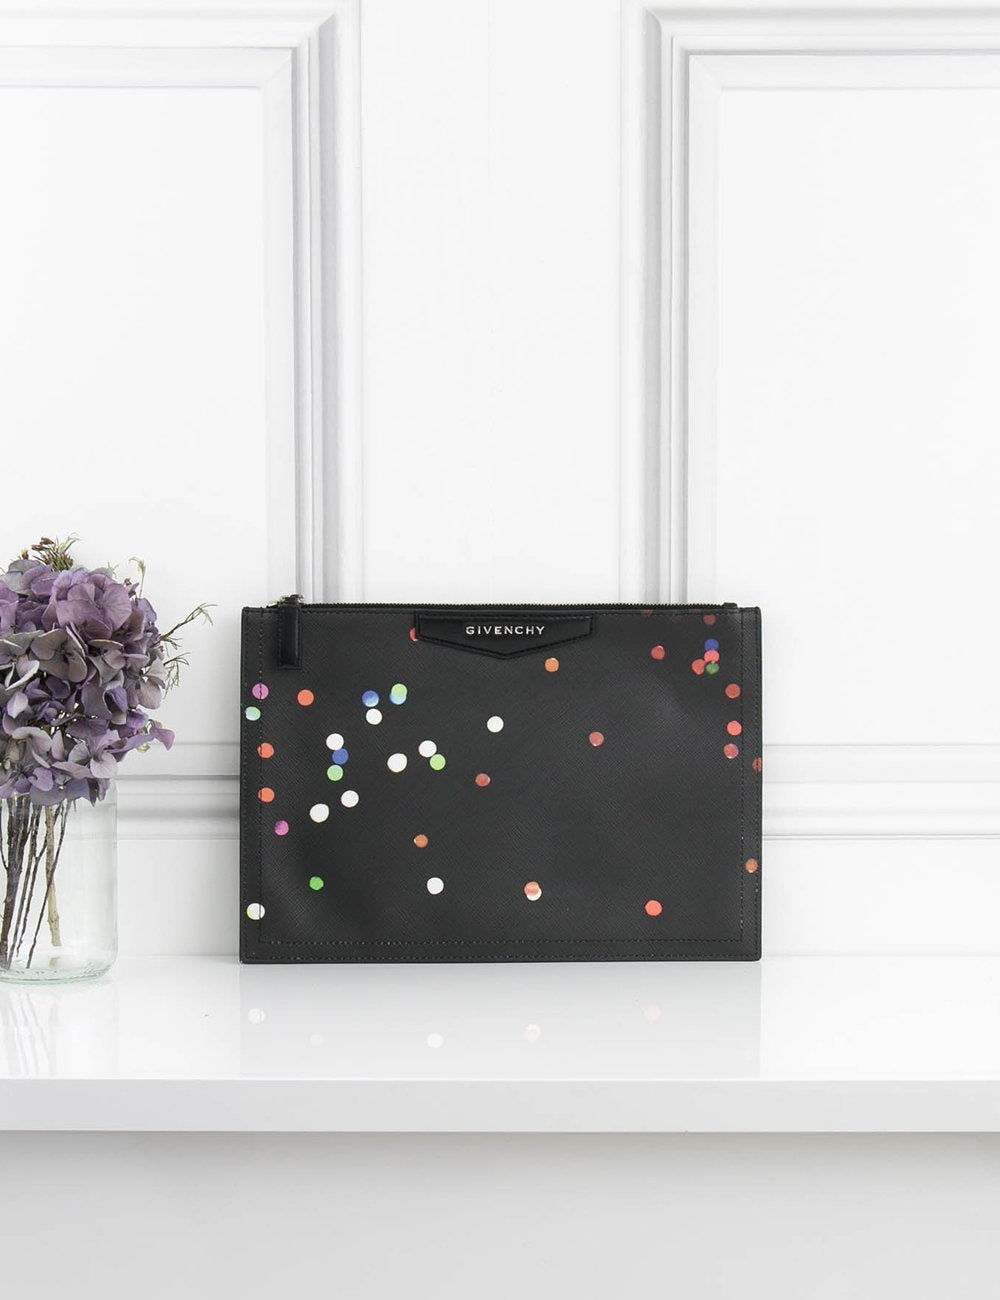 GIVENCHY BAGS Confetti pattern cluch